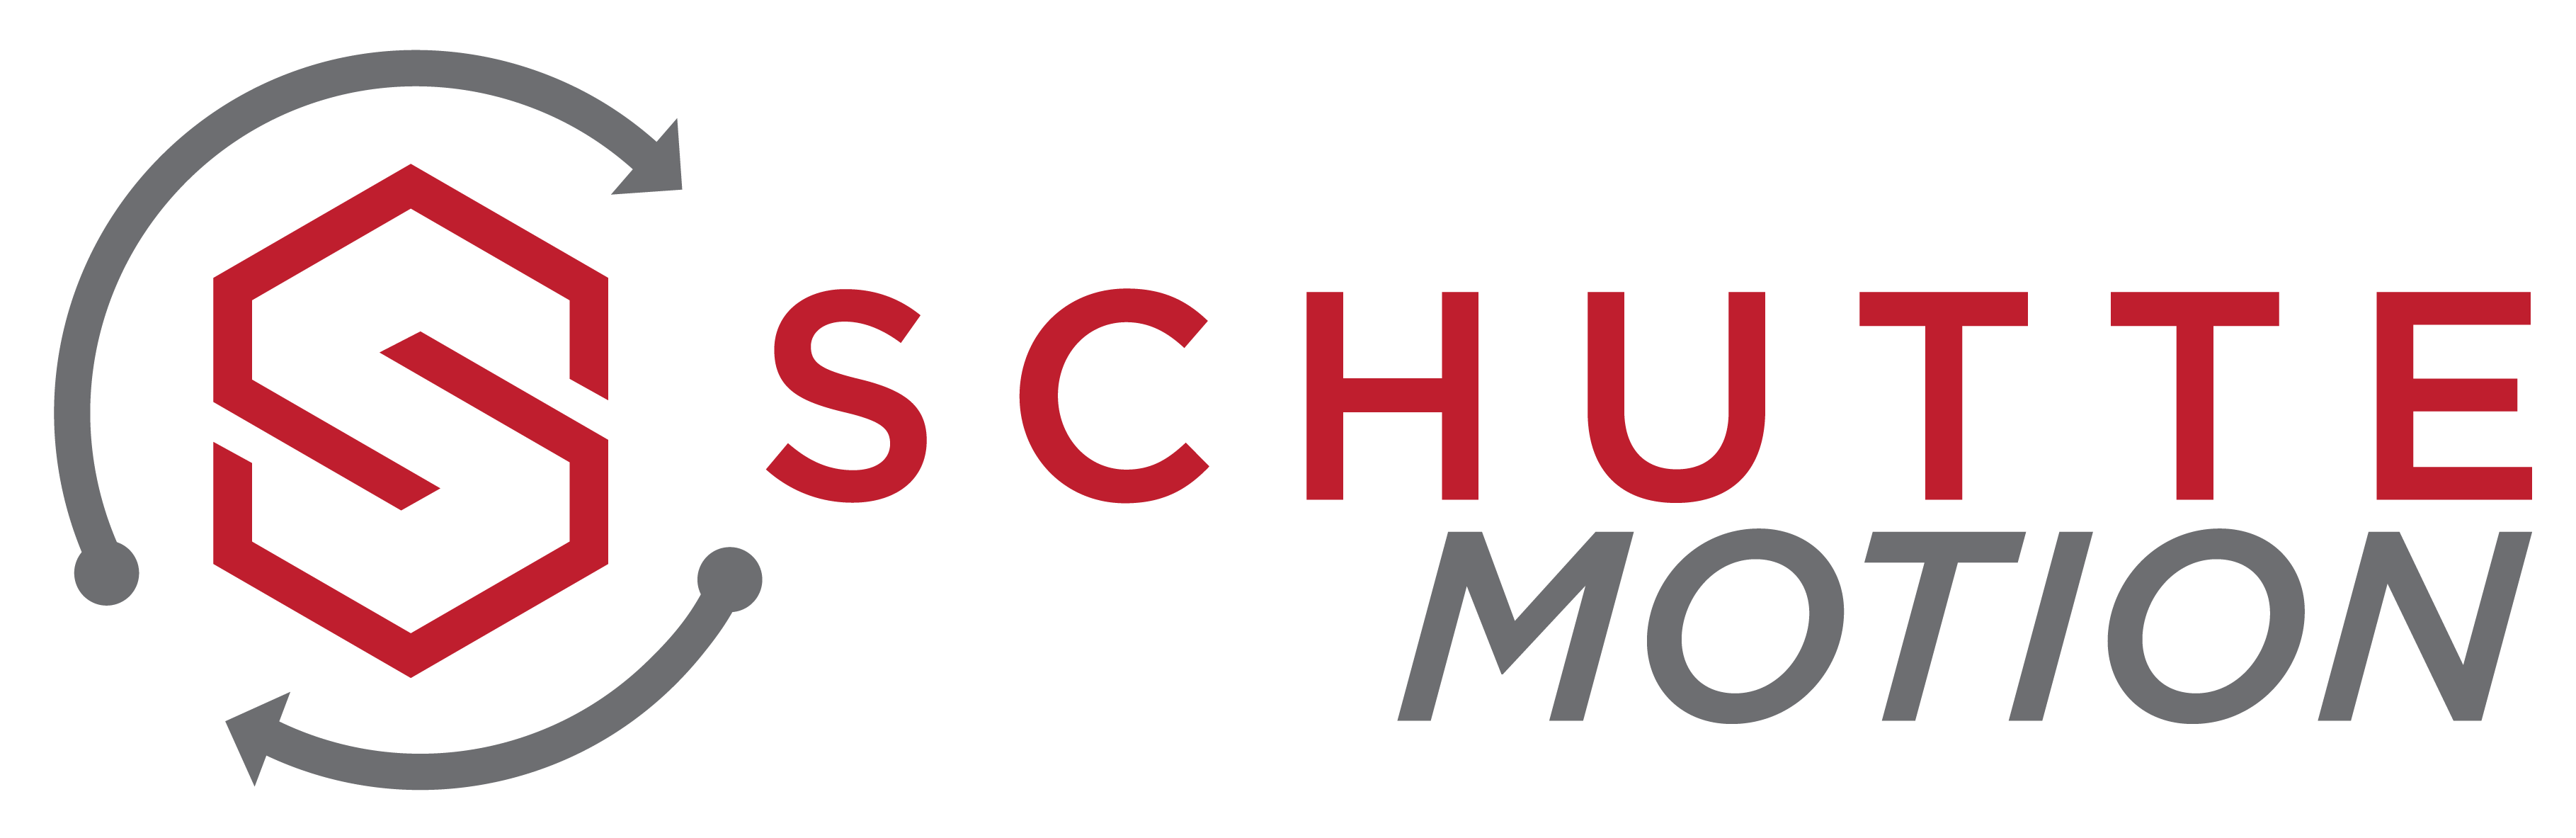 Schutte Motion